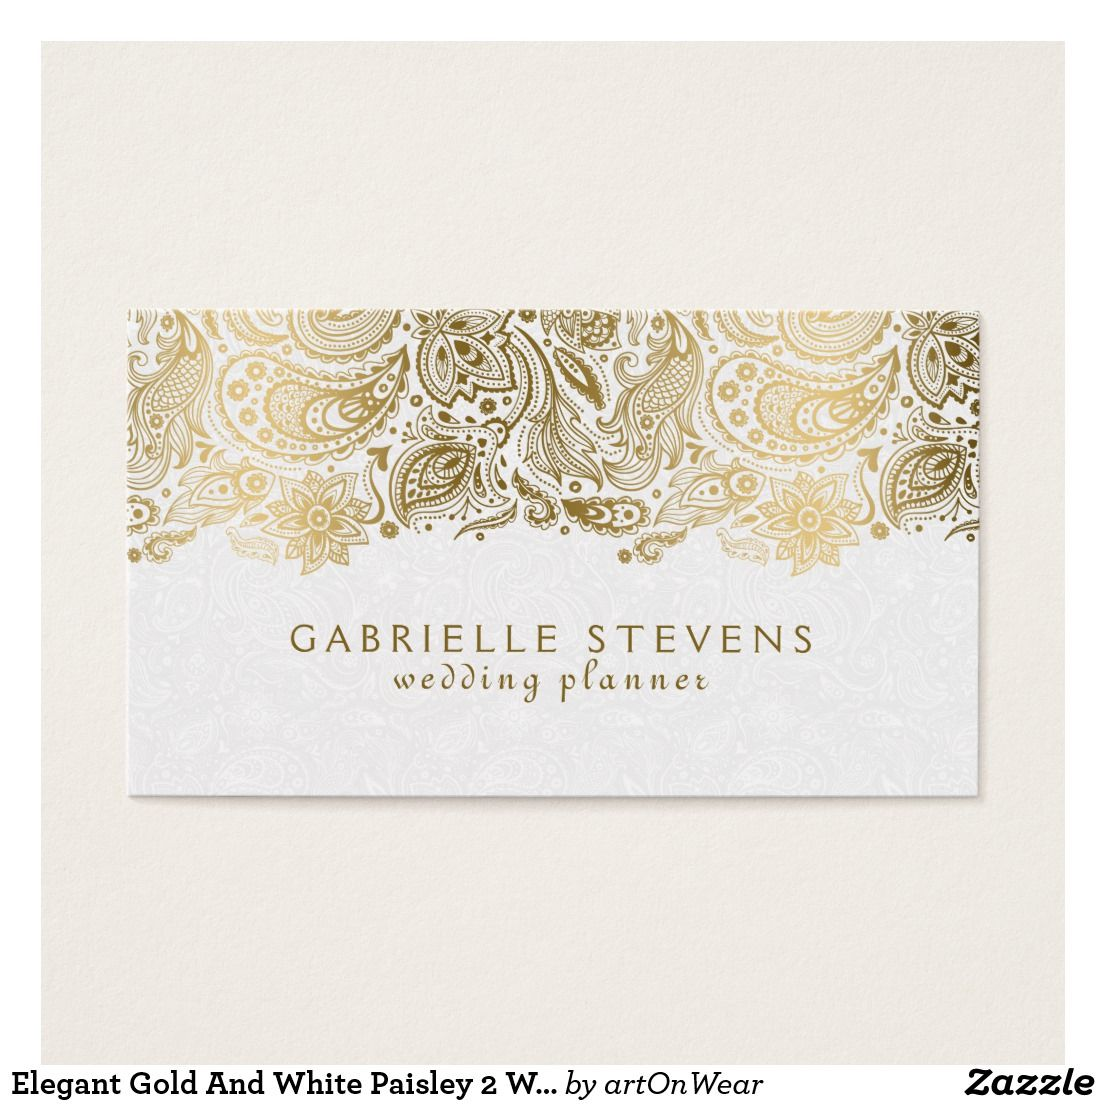 Gold And White Paisley Lace Business Card | Pinterest | Business ...